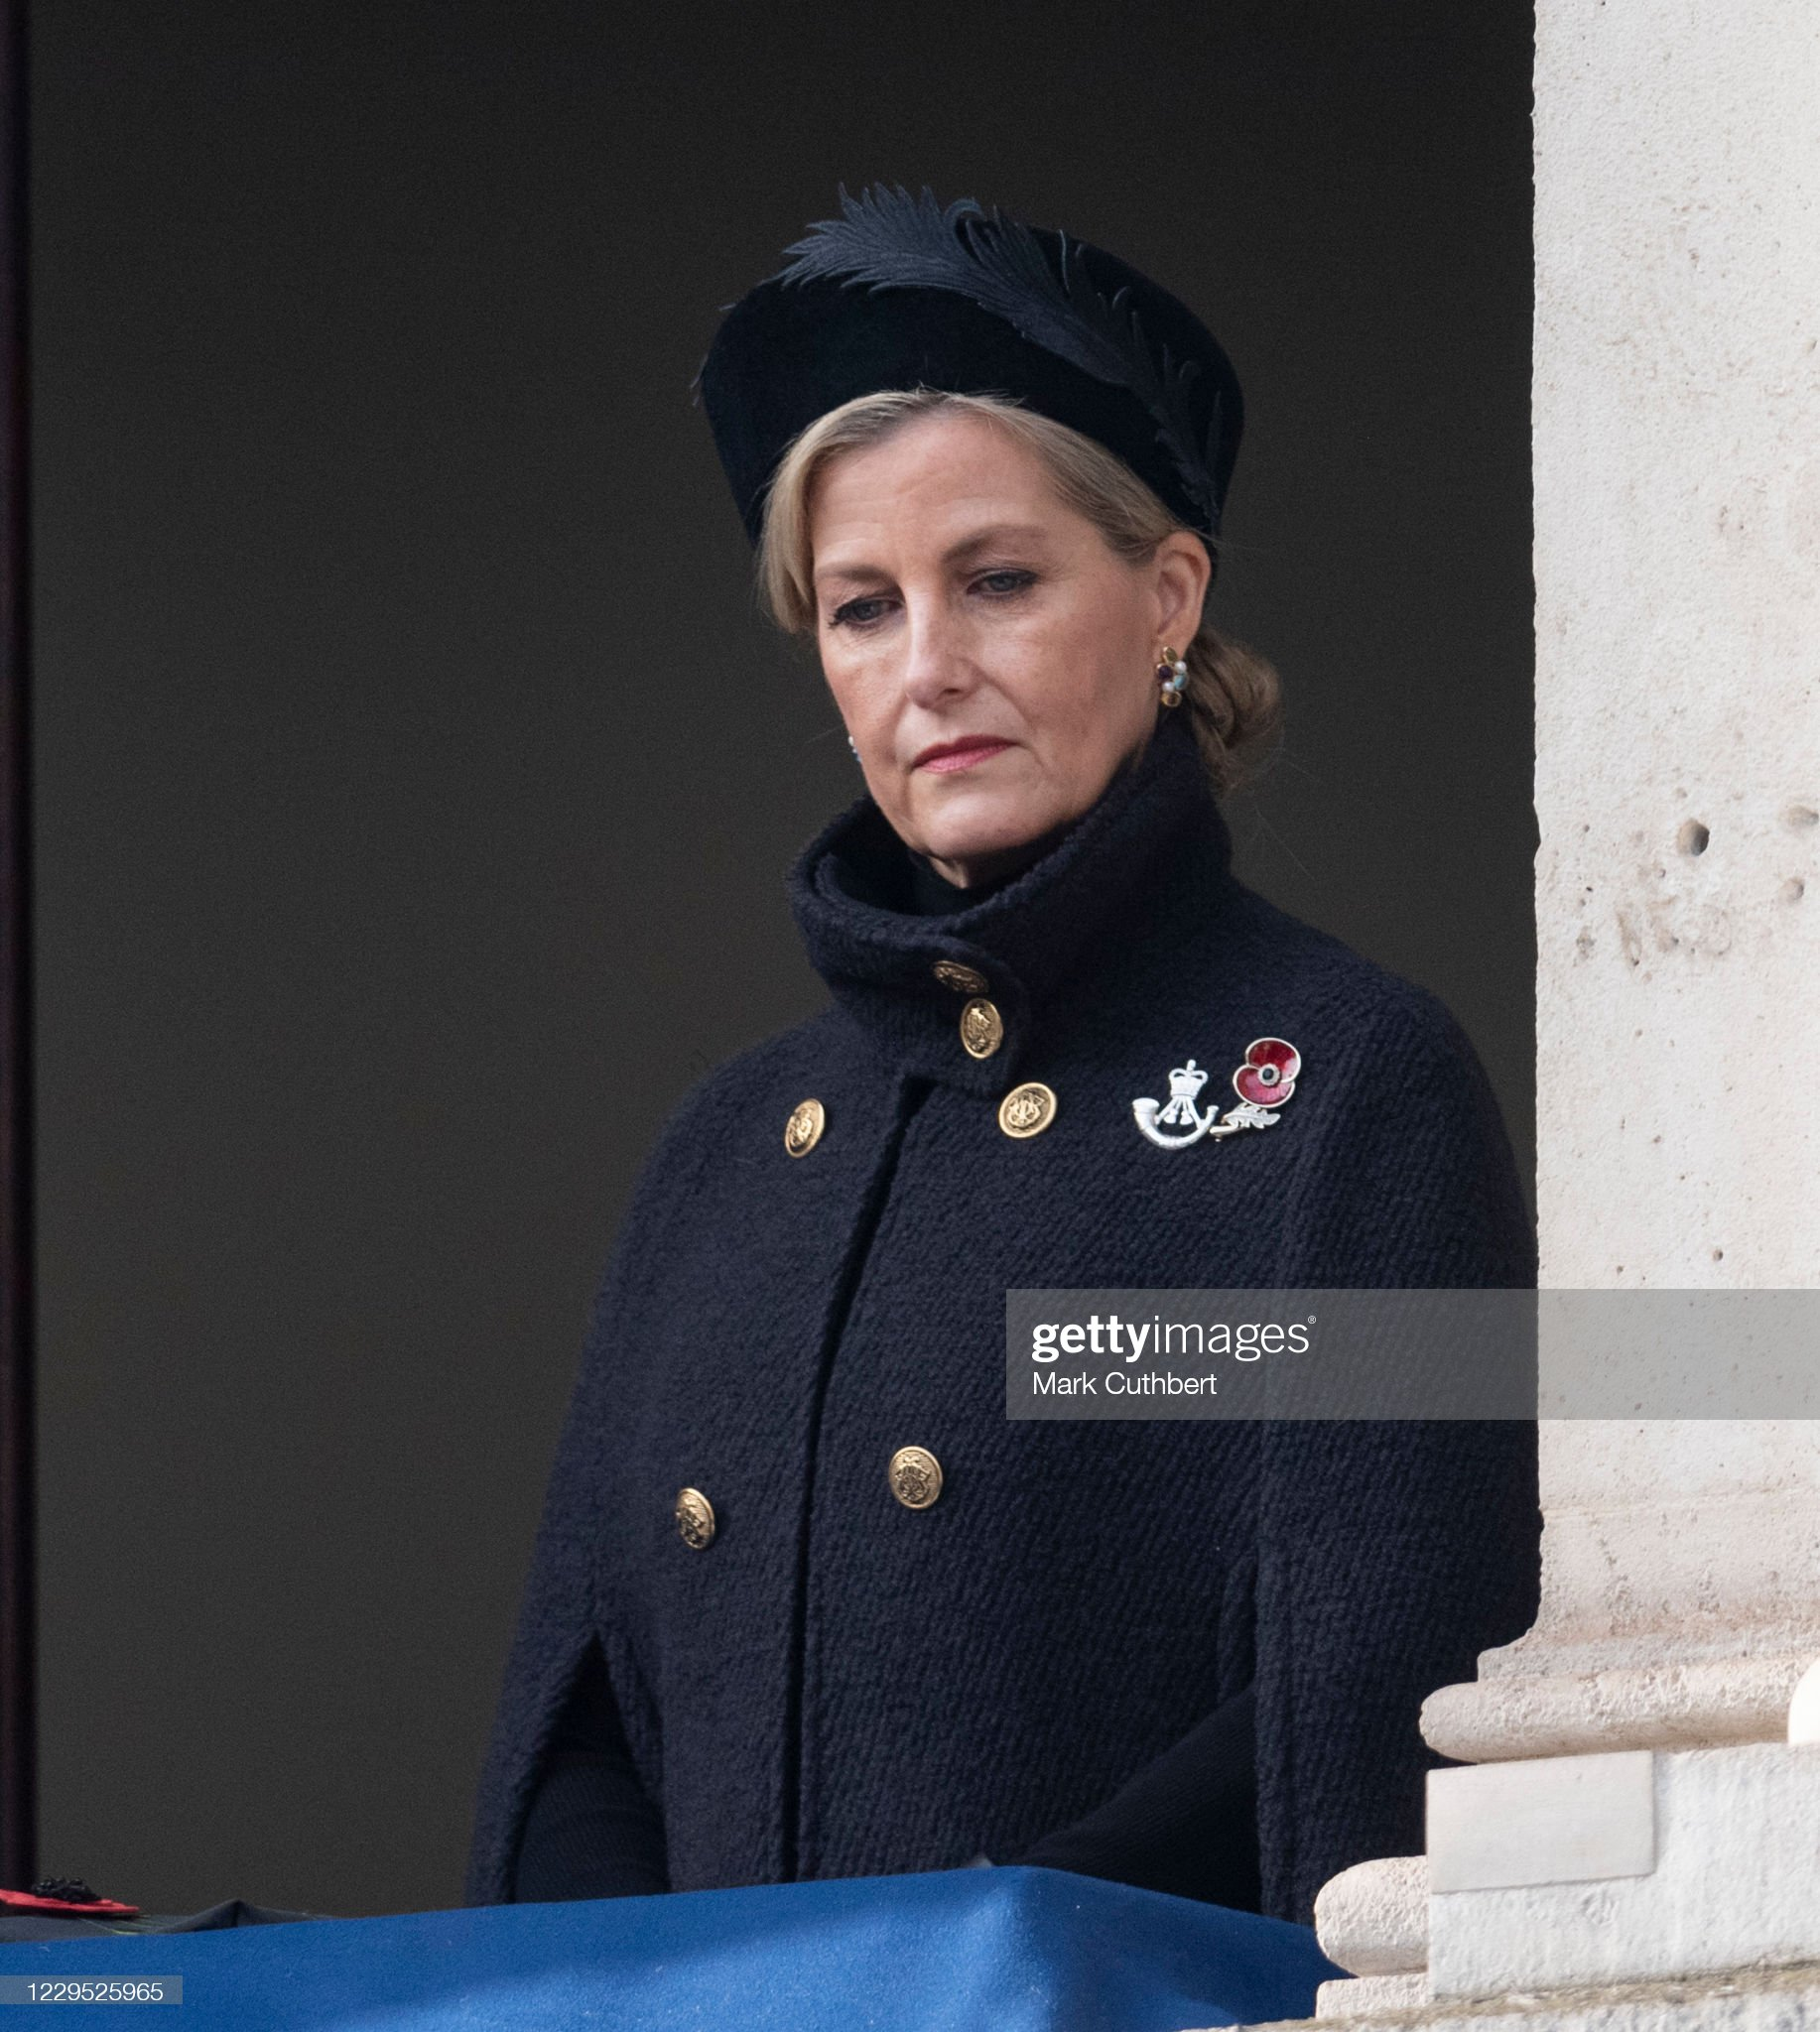 https://media.gettyimages.com/photos/sophie-countess-of-wessex-attends-the-annual-remembrance-sunday-at-picture-id1229525965?s=2048x2048